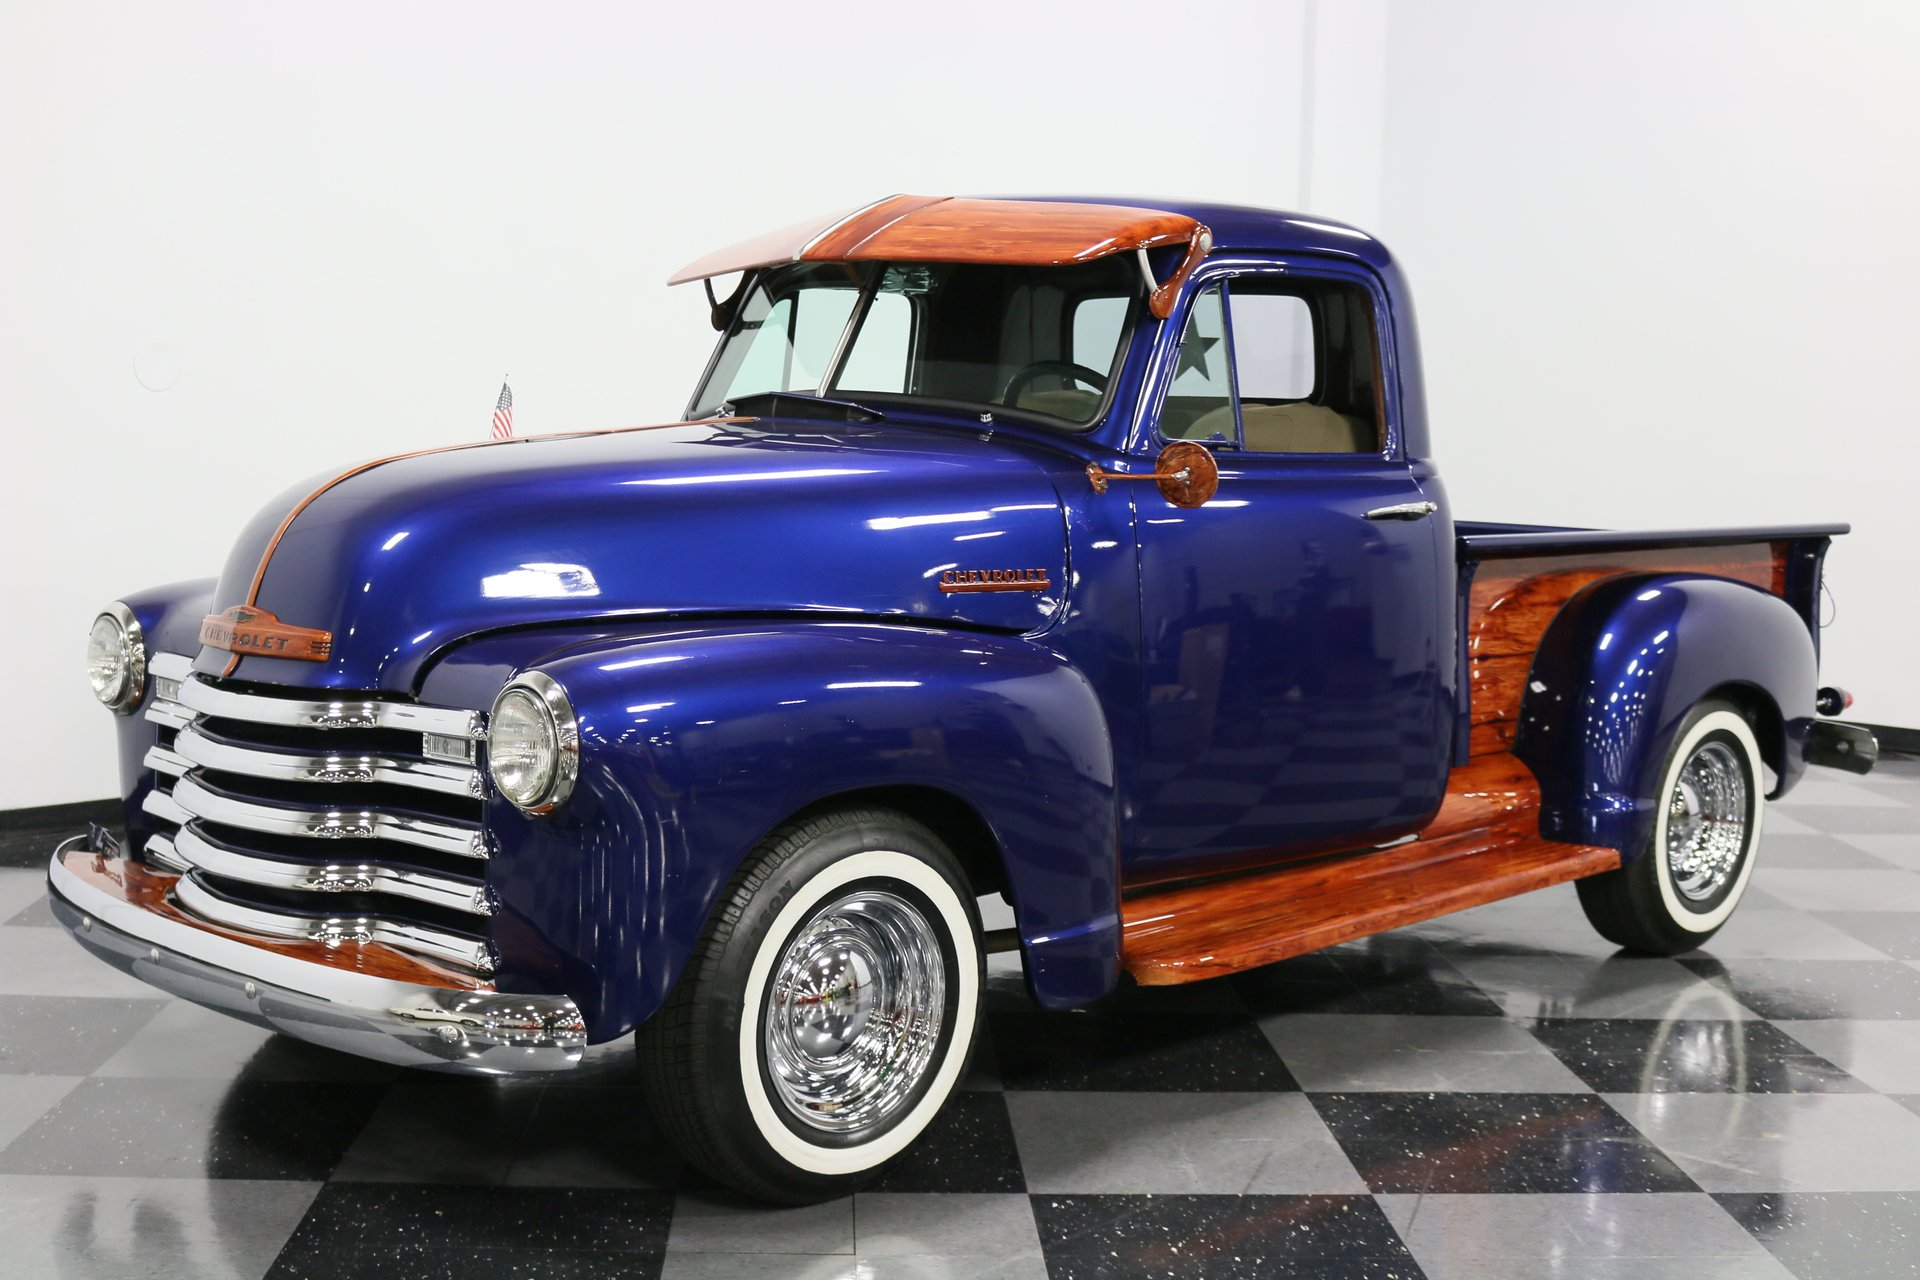 research.unir.net CHEVROLET 1952 Truck Owner's Manual 52 Chevy ...